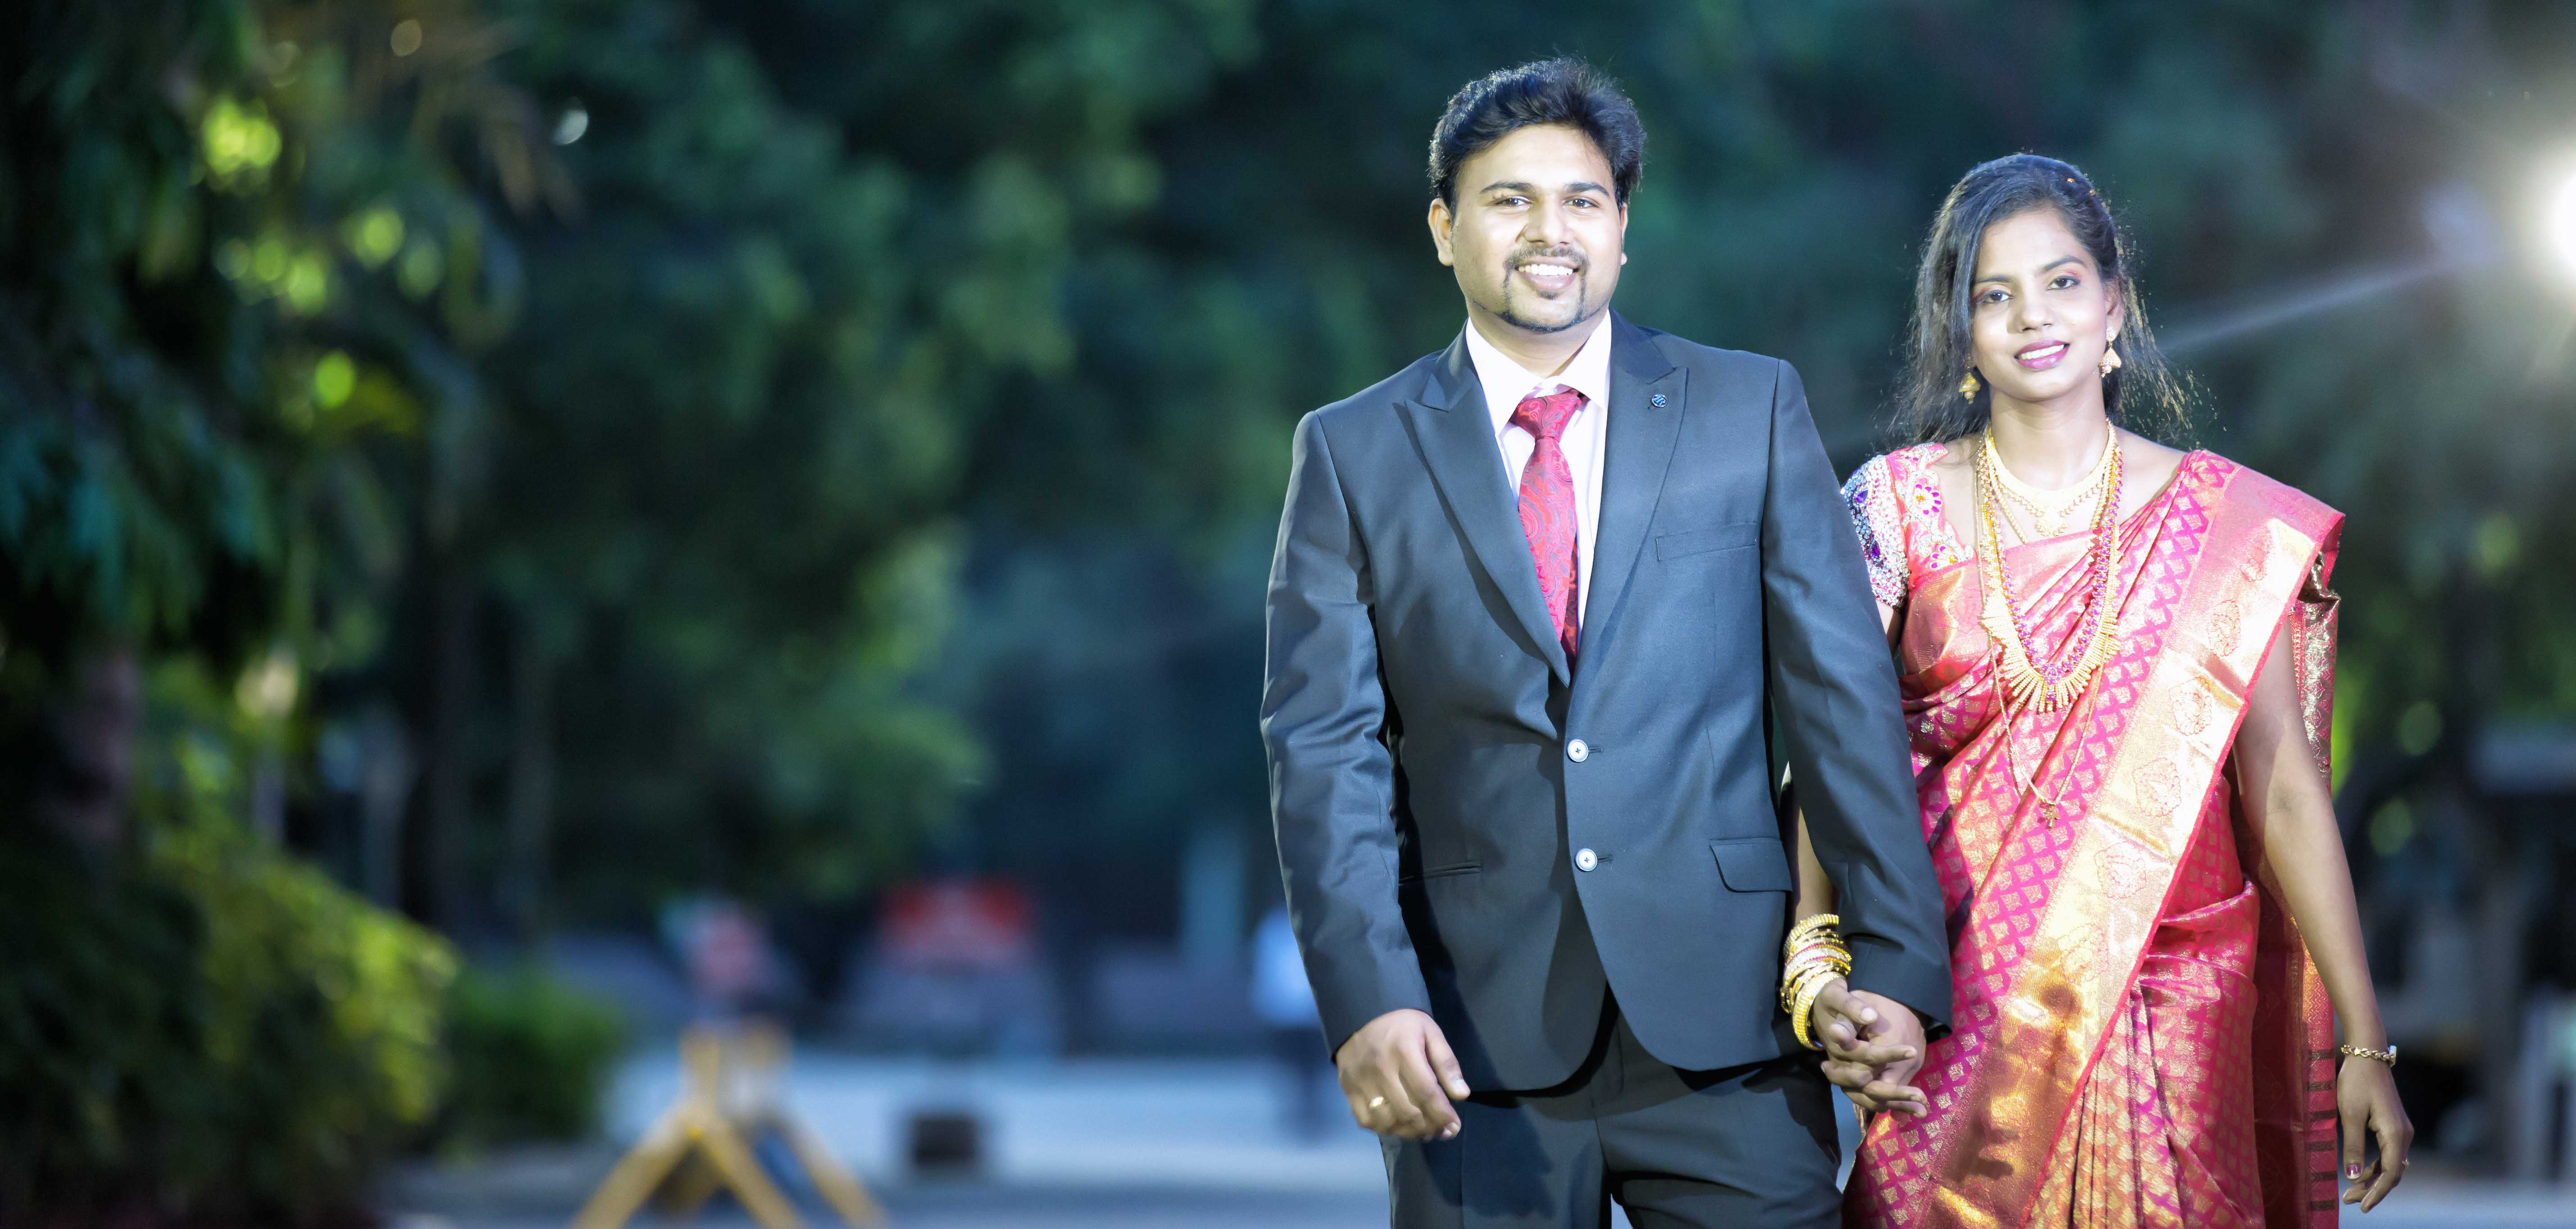 Dilip & Sheba\'s Wedding - Chennai, India | Franklin Marian Photography